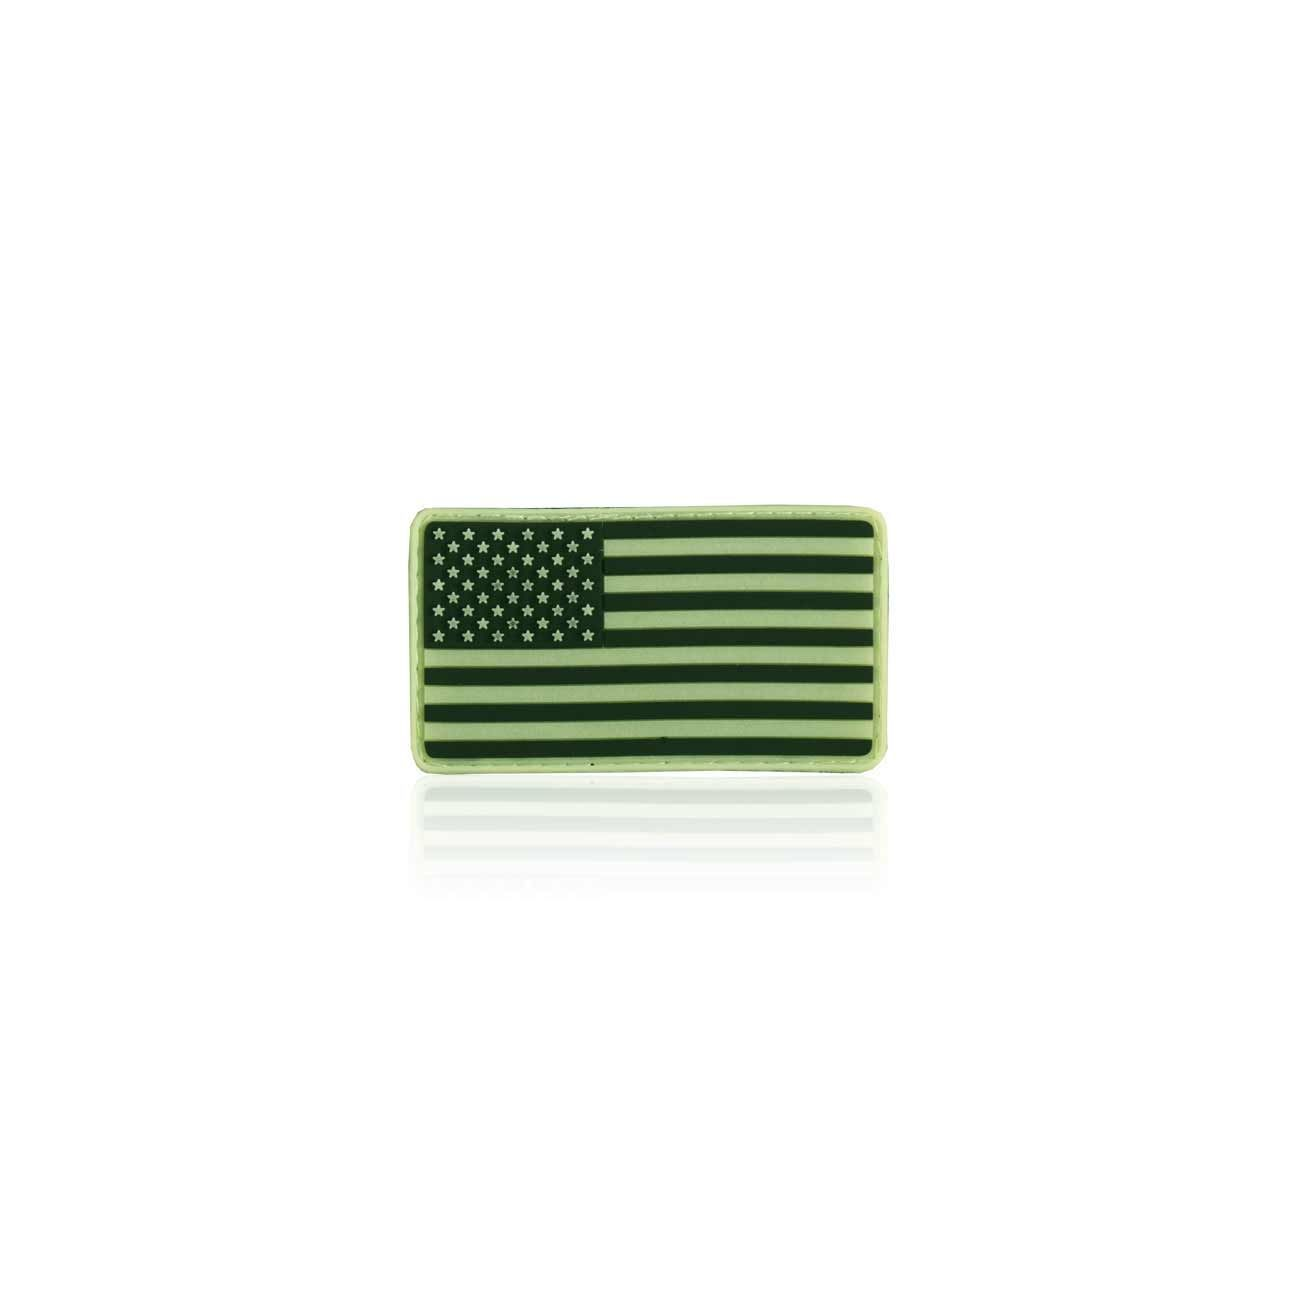 3D Rubber Patch USA nachleutend 1